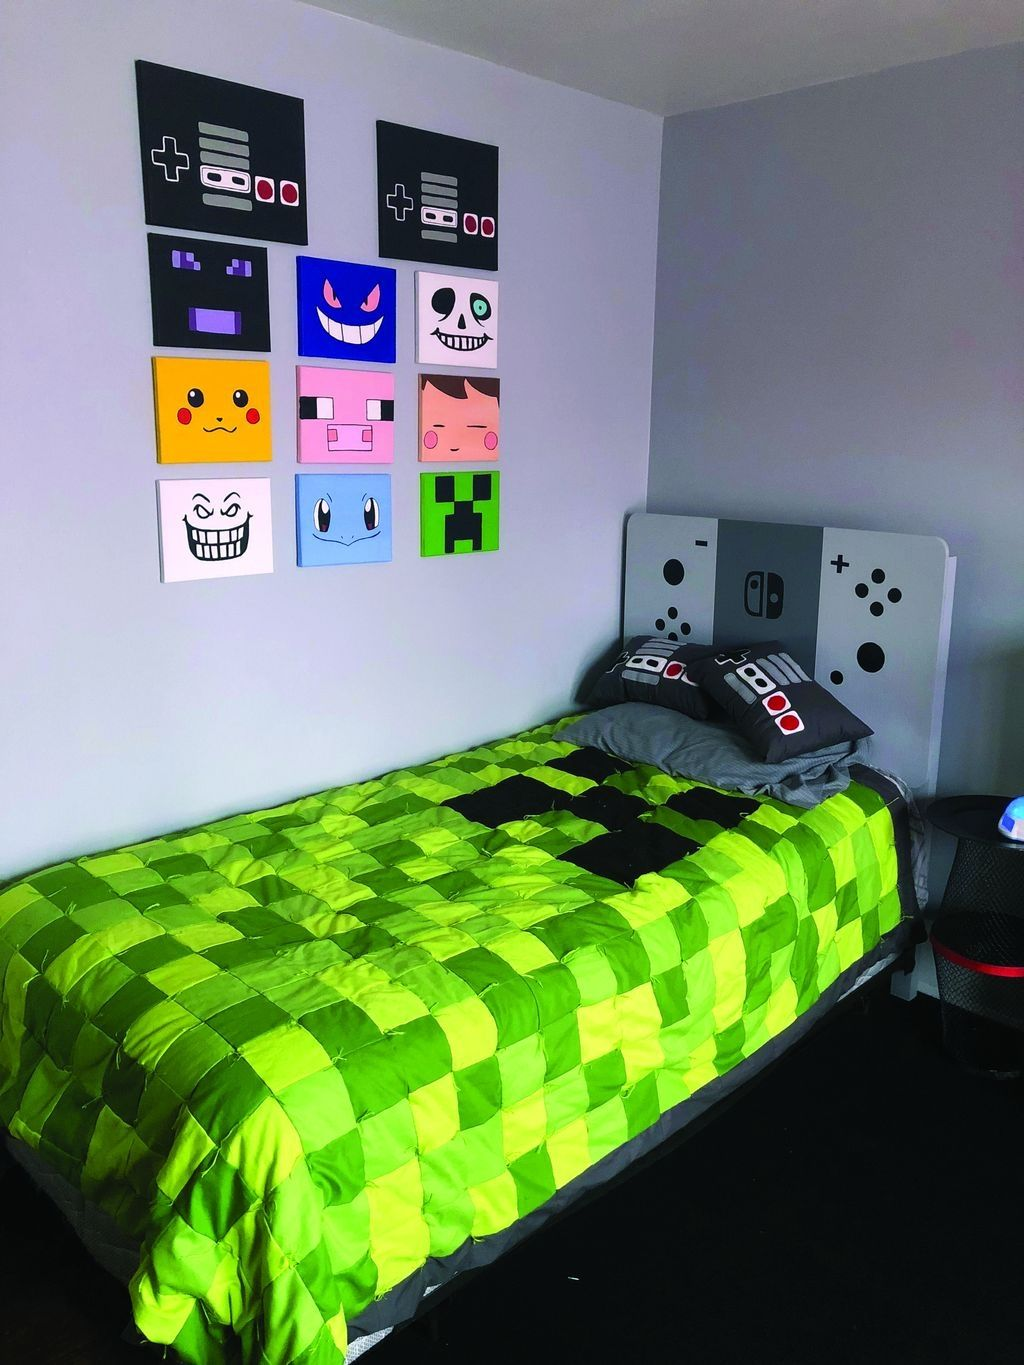 40 Brilliant Bedroom Decoration Ideas For Your Boy Video Game Room Decor Gaming Bedroom Ideas Fortnite Bedroom Ideas